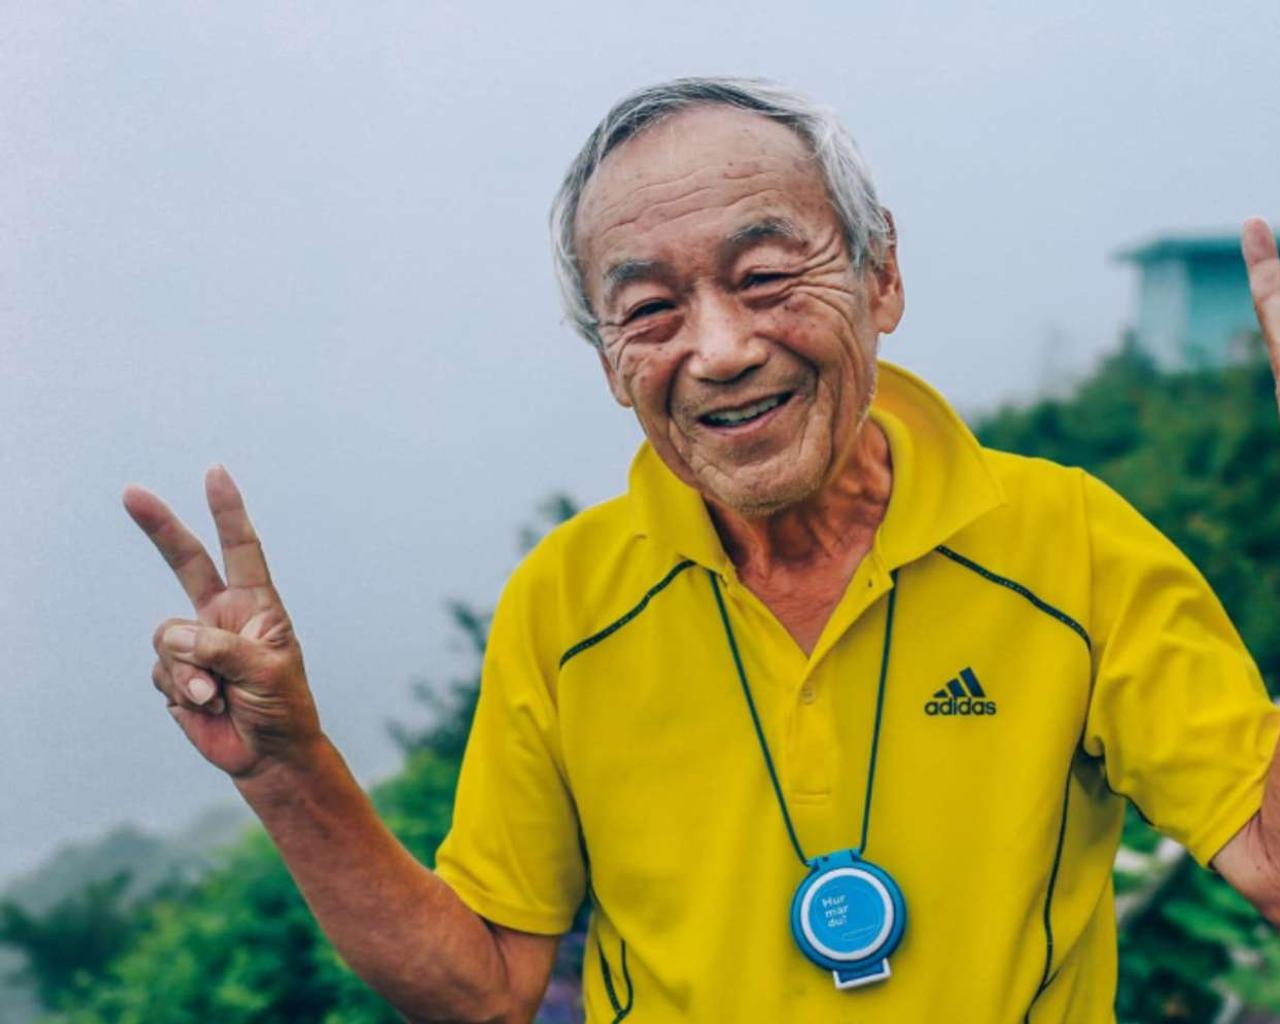 Five habits of living better and longer (healthier lifestyle).